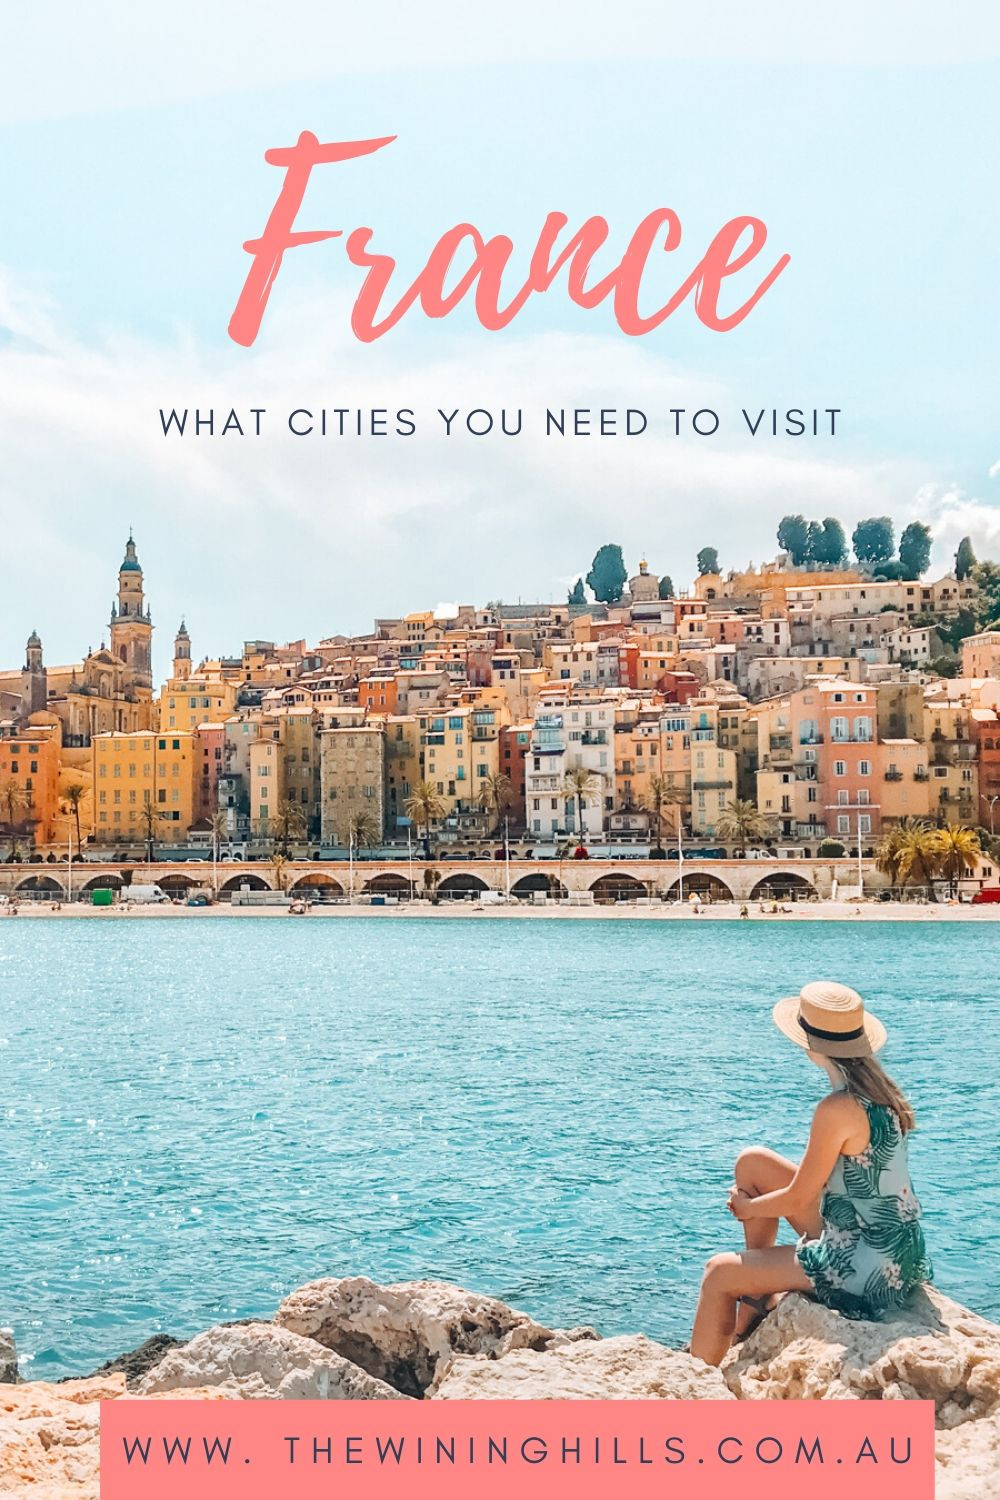 France: 10 cities you must visit! Including Colmar, Bordeaux, Nice, Menton, Etretat, Tours